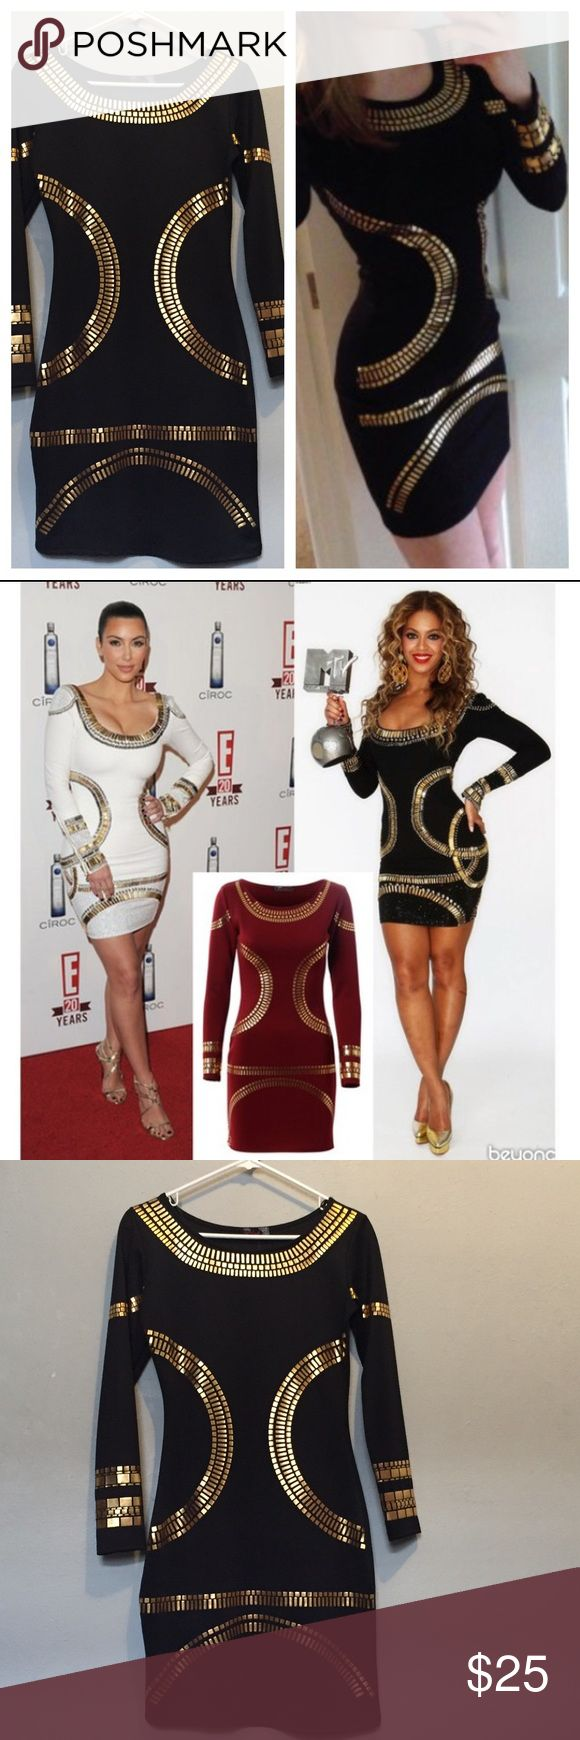 Black and Gold bodycon dress. Celebrity inspired. NWT size small. Dresses